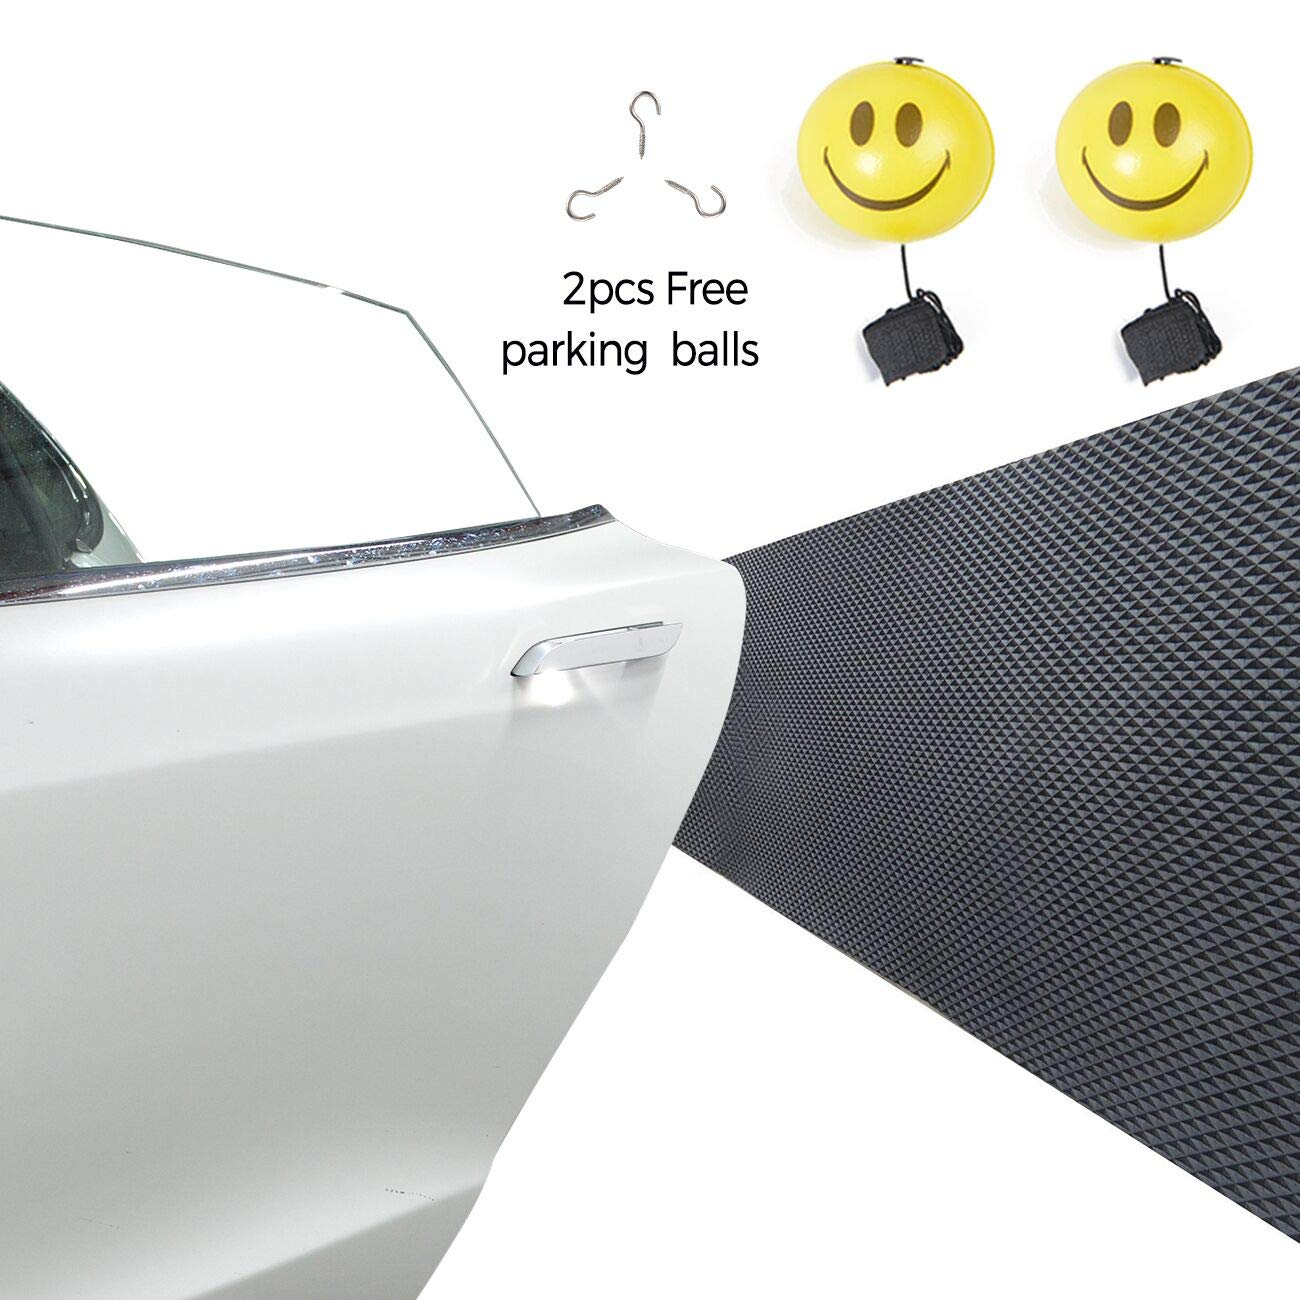 HQAP Waterproof Garage Wall Protector Car Door Protector 2 Pack 1/4 Thickness, Gift: Retracting Stop Ballg